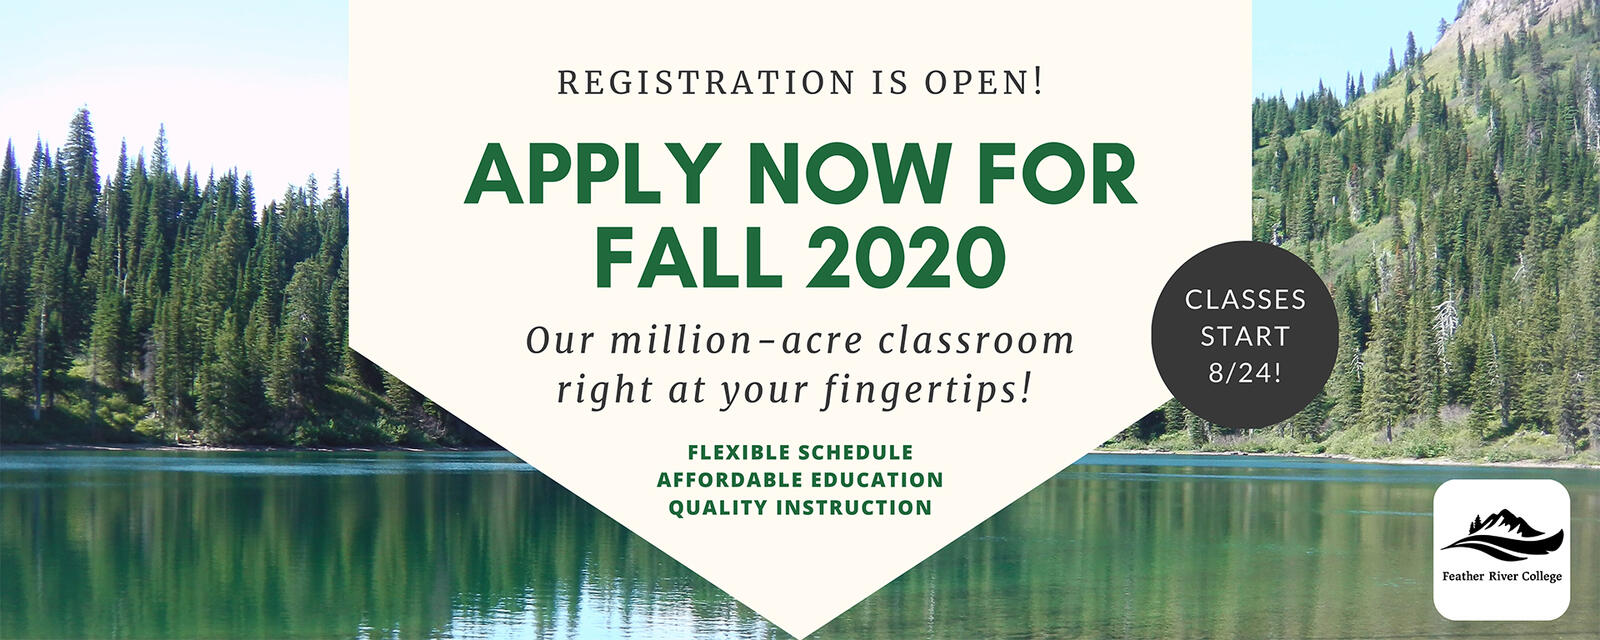 Registration open for Fall 2020. Our  million-acre classroom right at your fingertips! Classes start 8/24